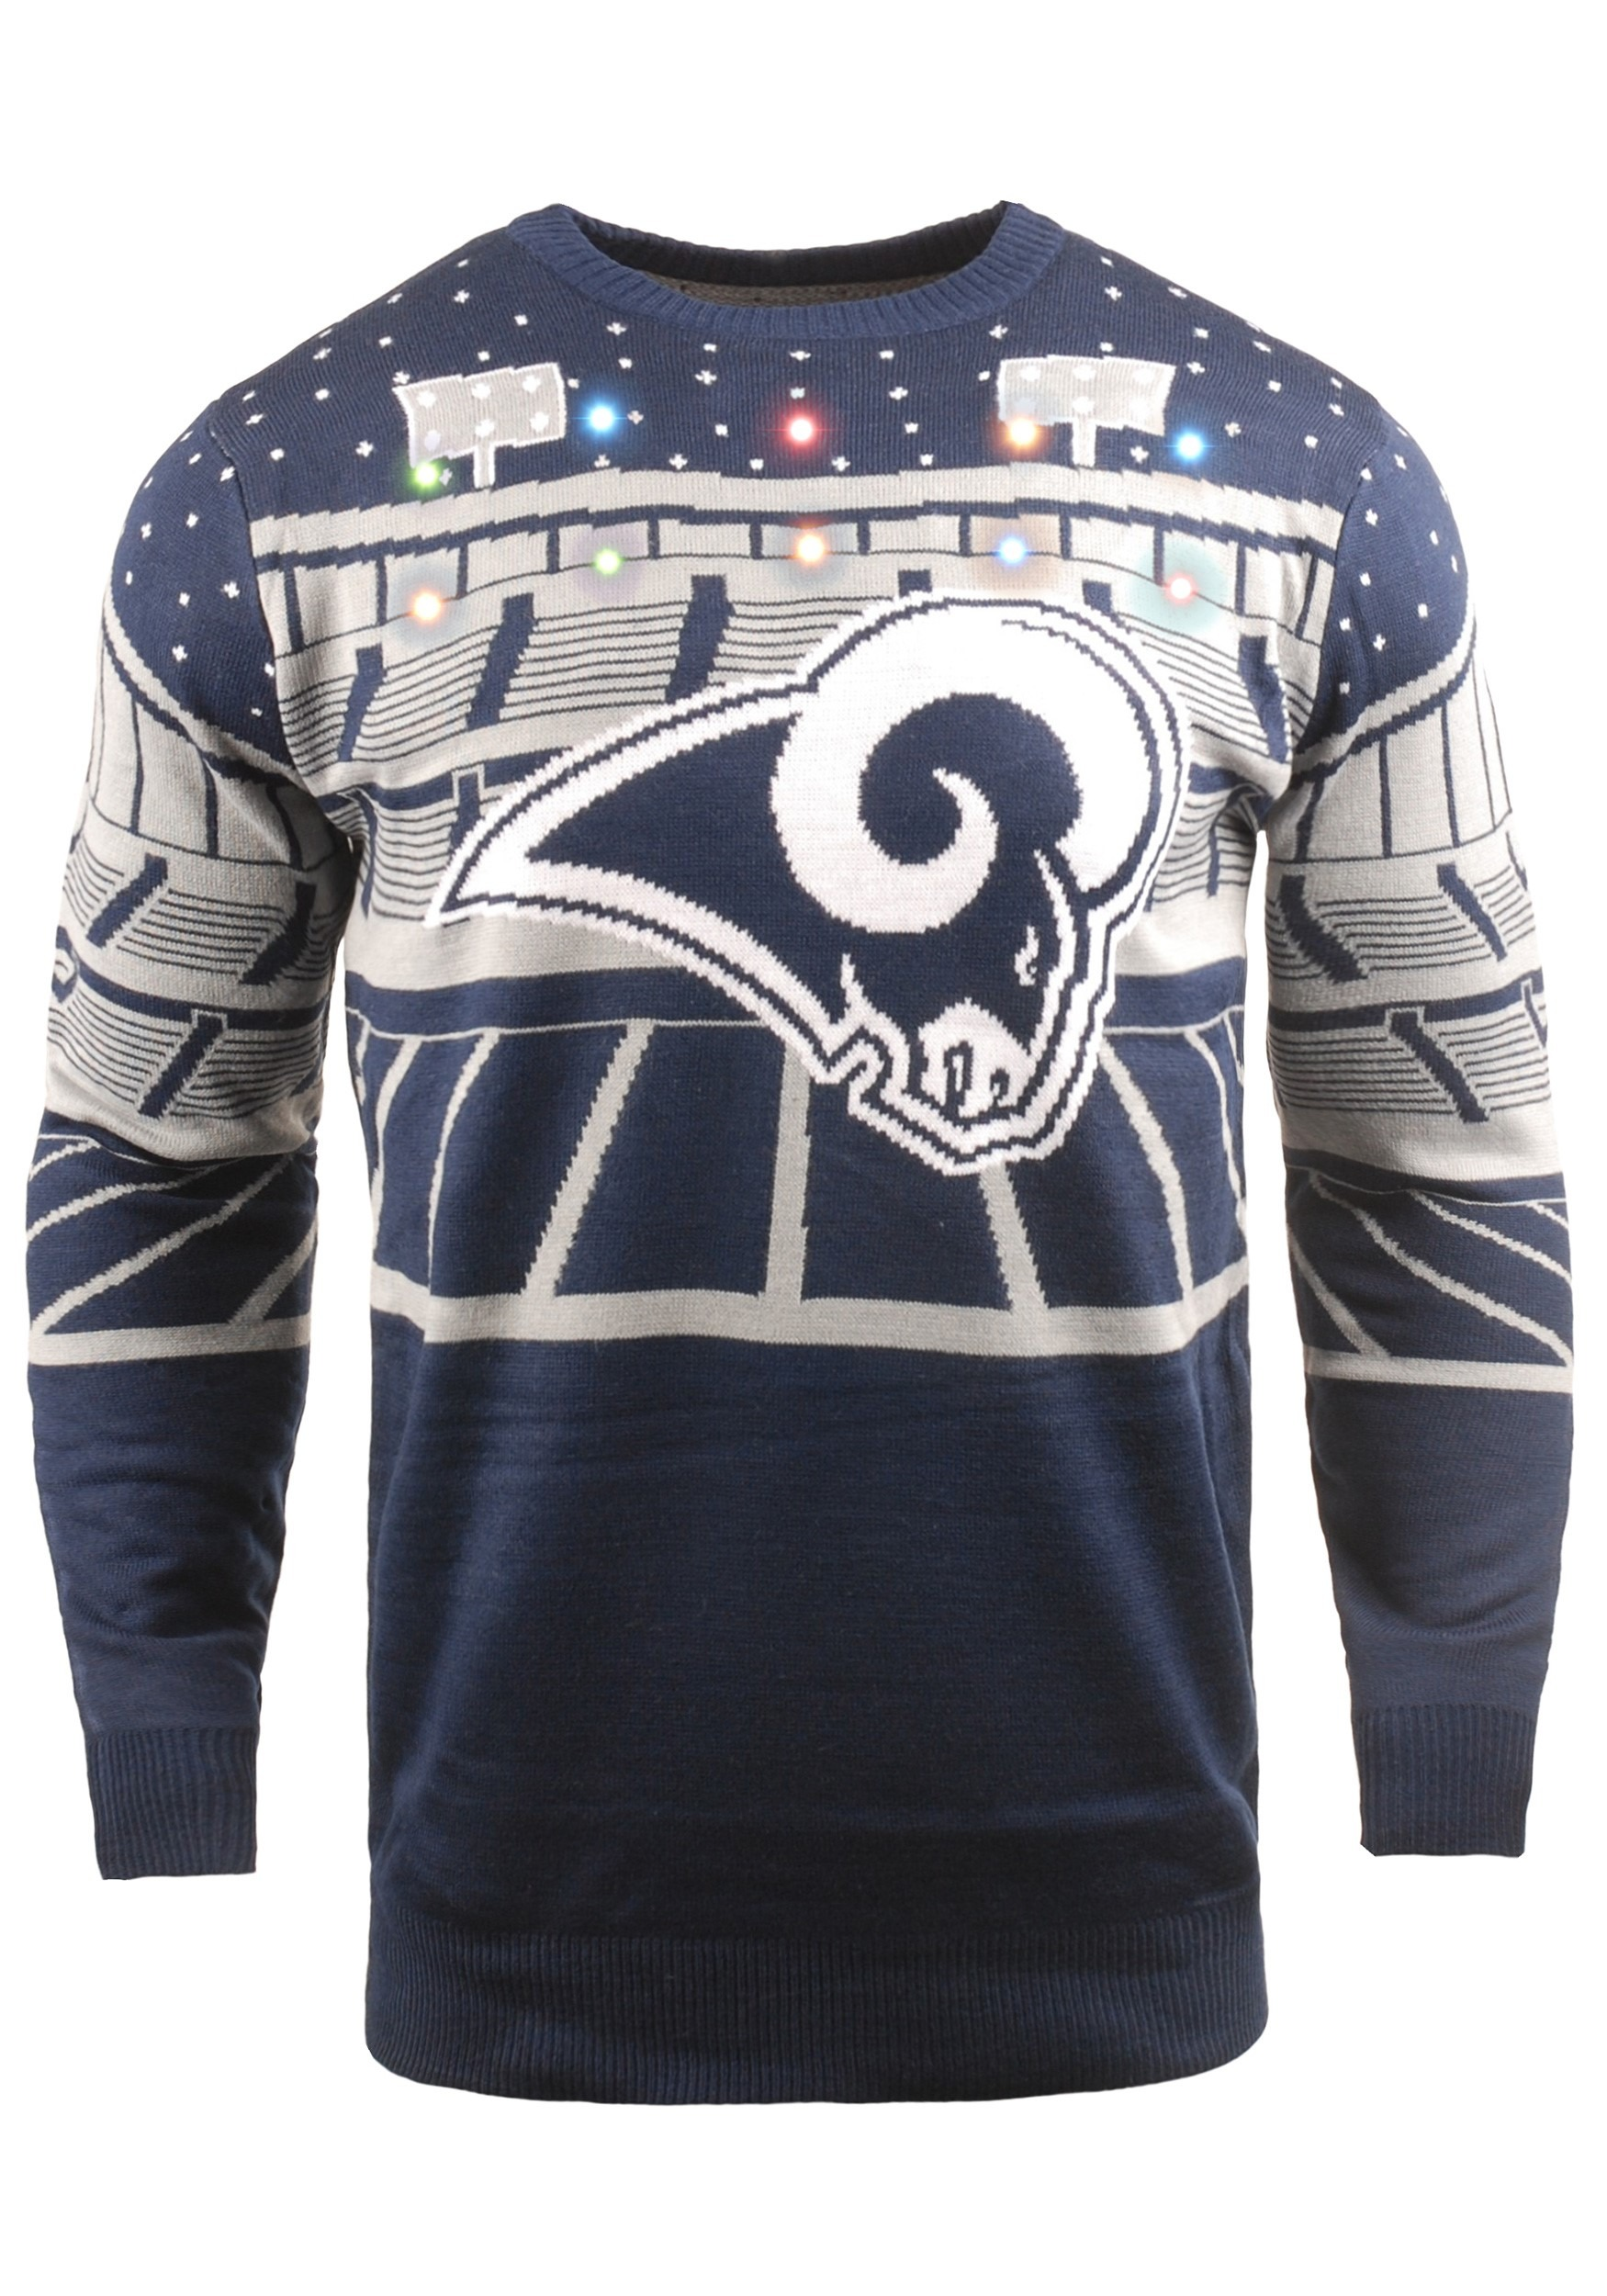 check out b7e2e 46243 Light Up Bluetooth Los Angeles Rams Ugly Christmas Sweater